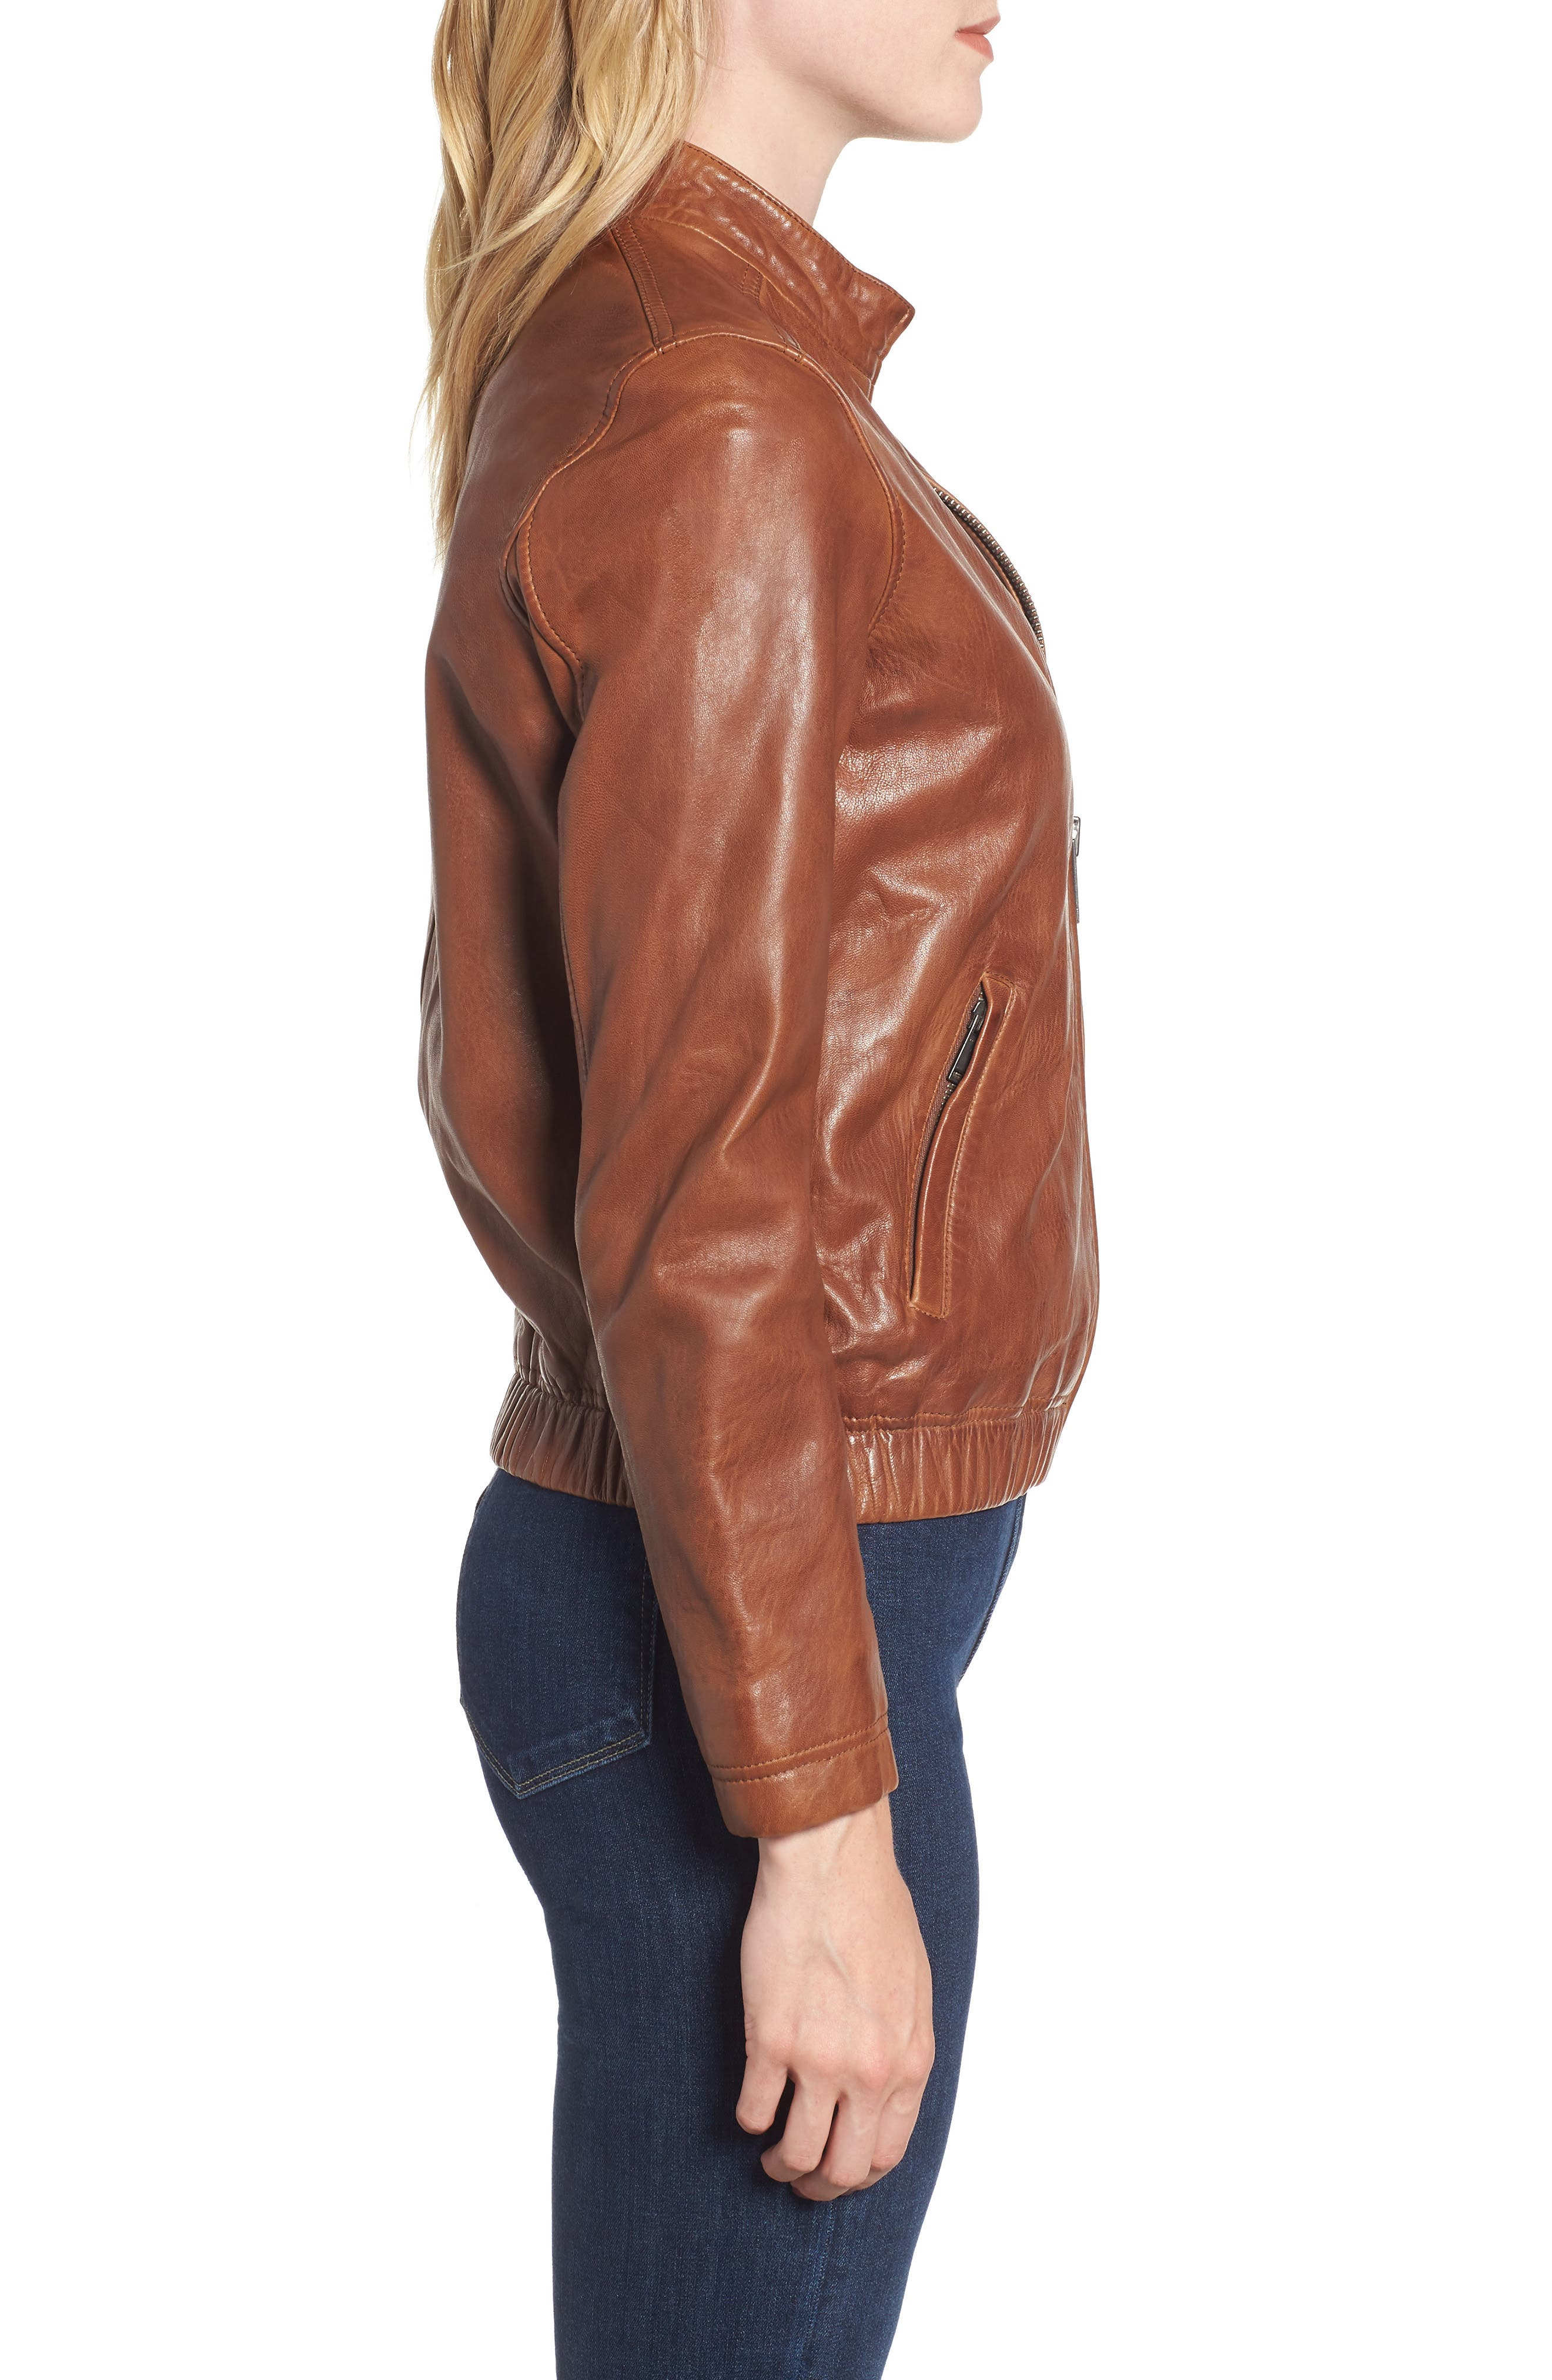 LUCKY BRAND,                             Ana Leather Jacket,                             Alternate thumbnail 4, color,                             210